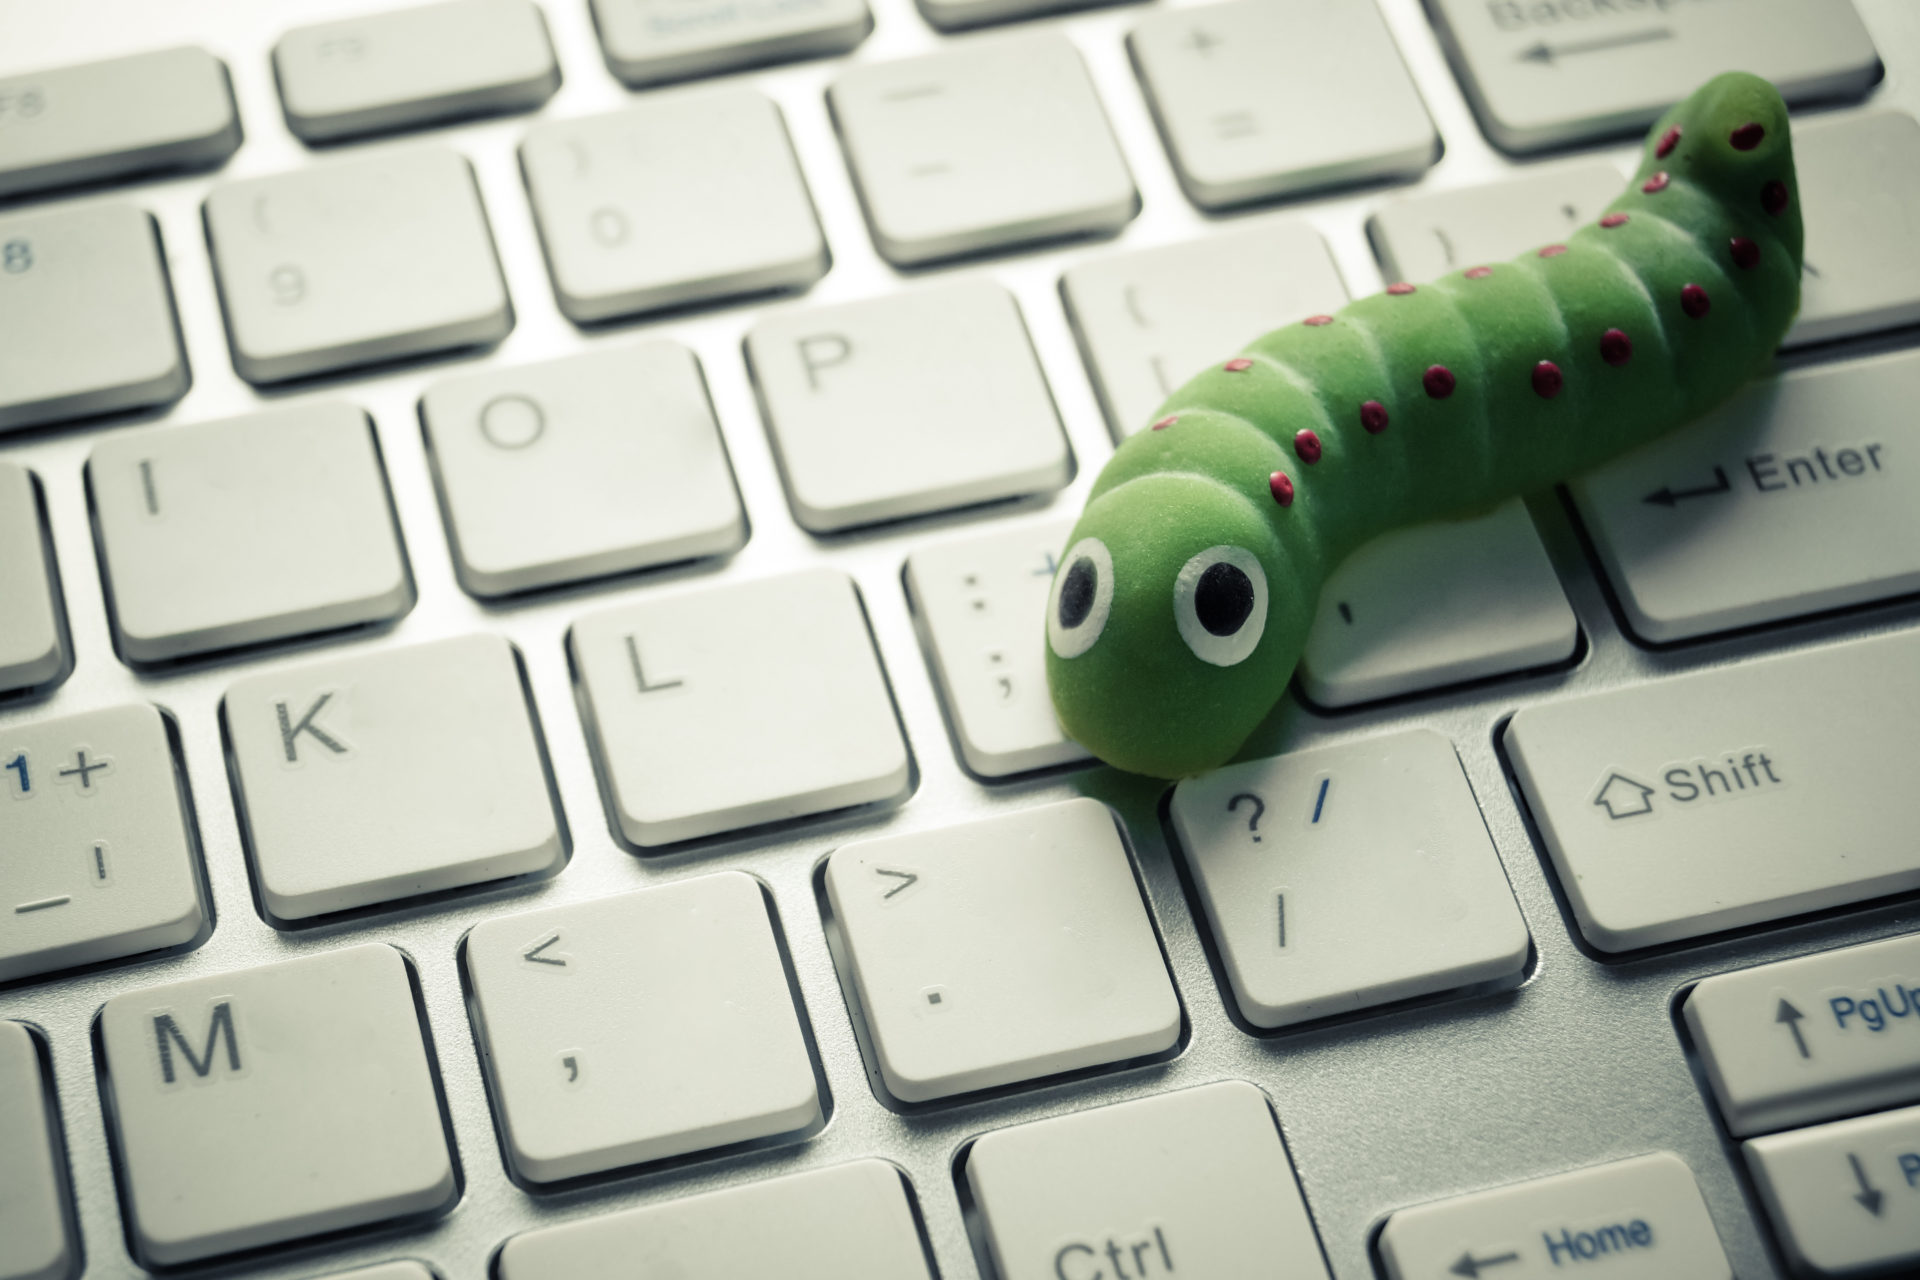 Thirty years ago the Morris Worm changed our view of cybersecurity forever. What's changed since?